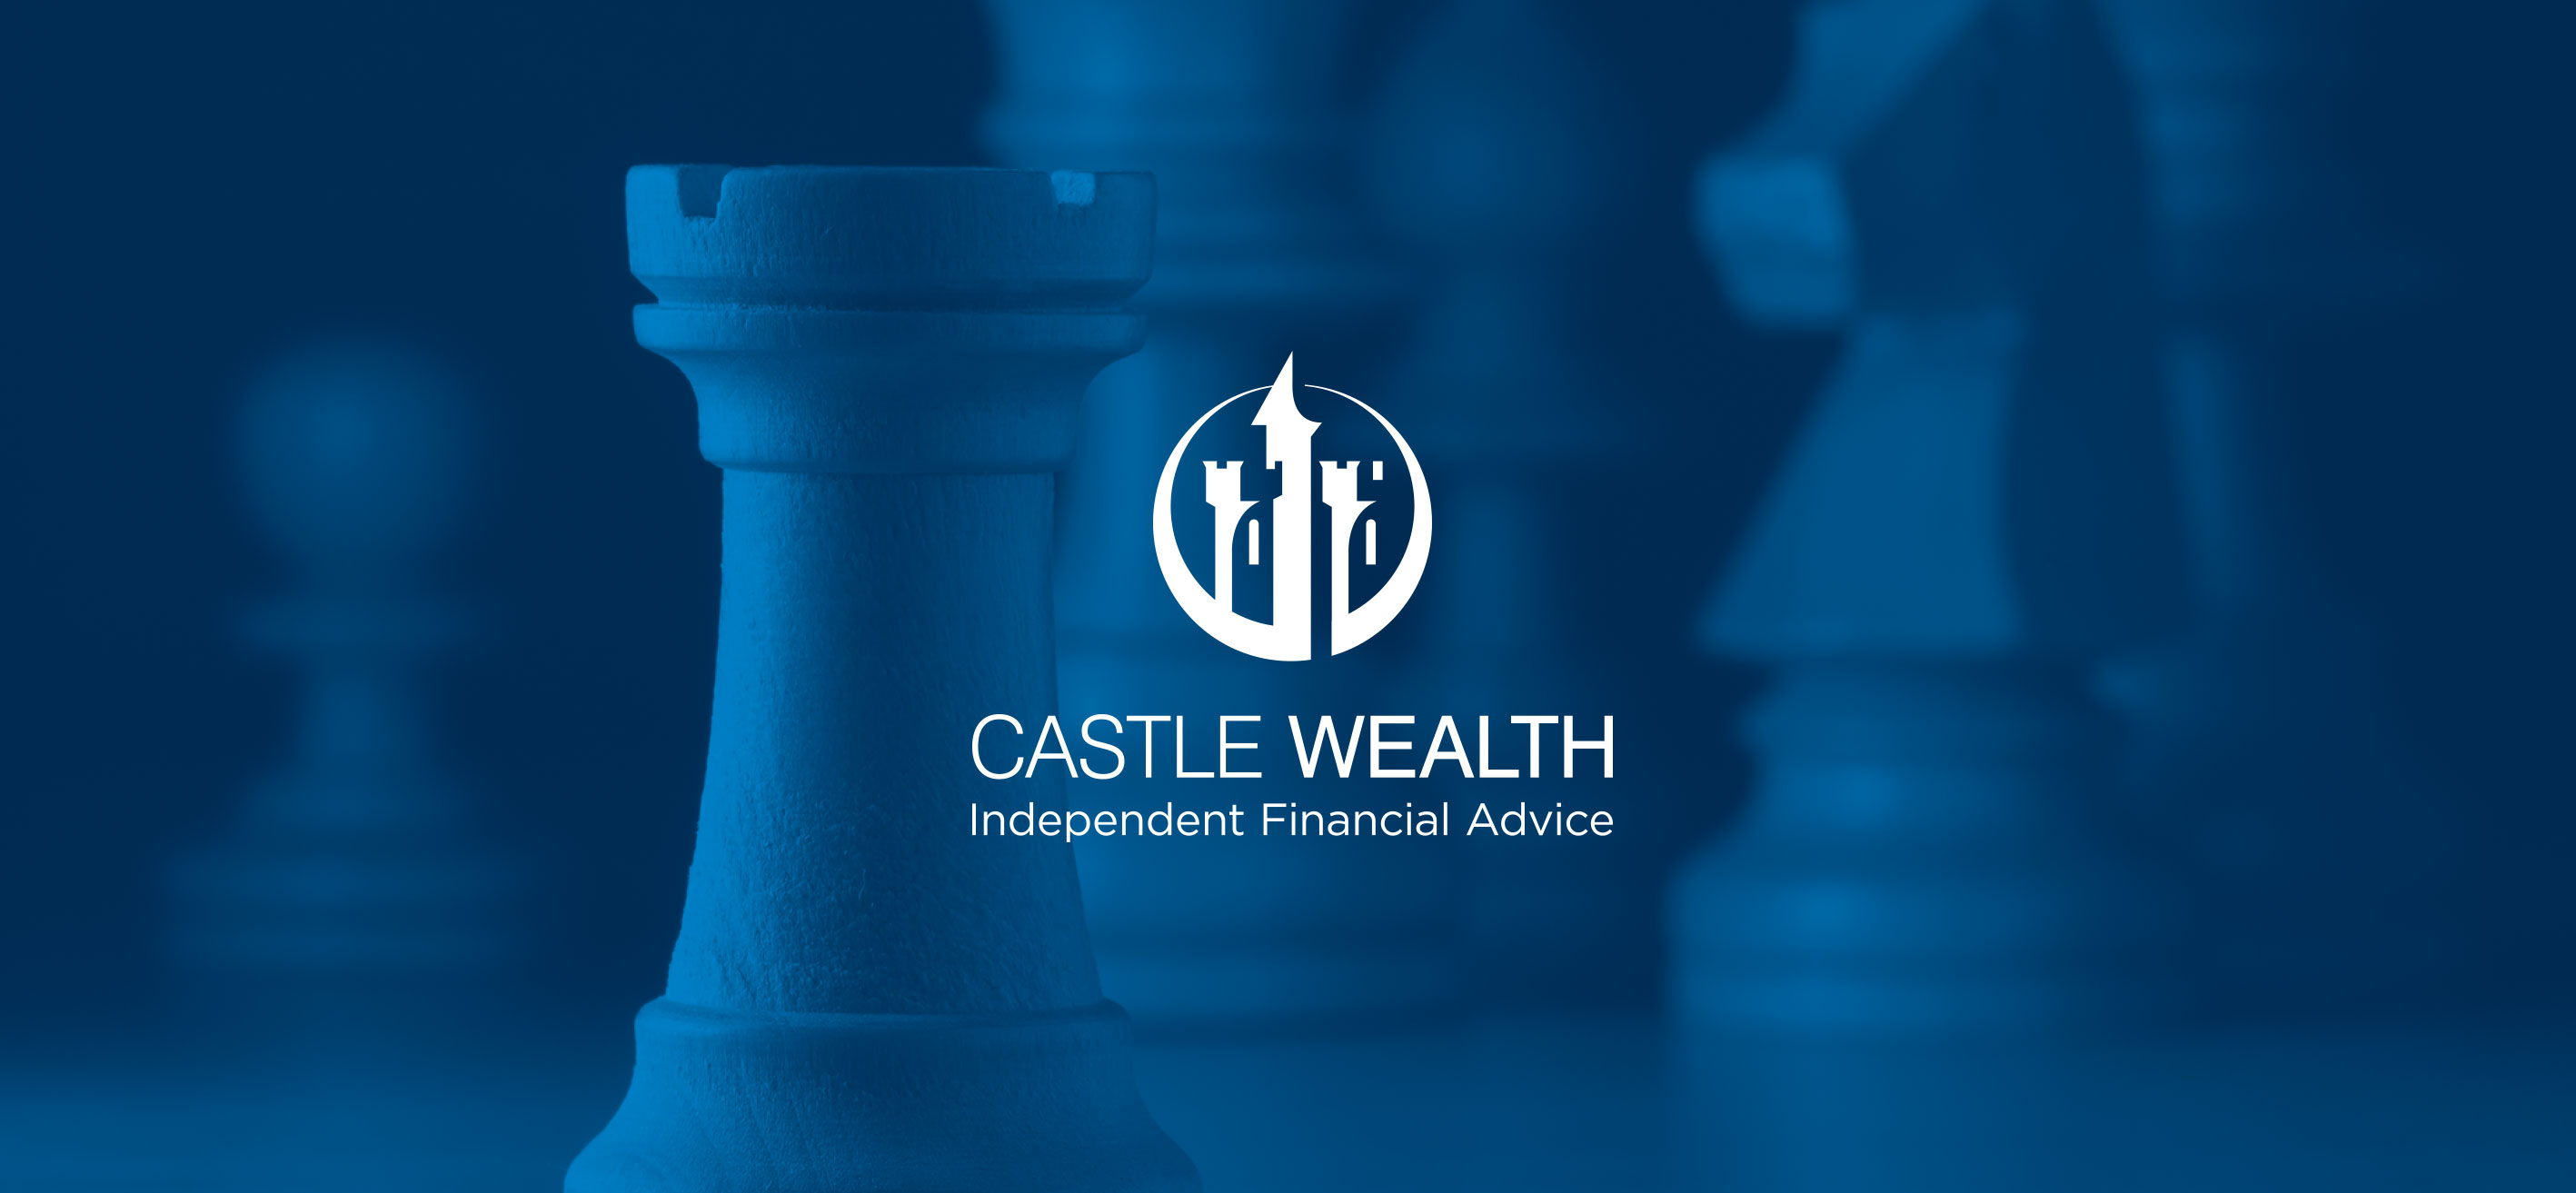 castlewealth-background